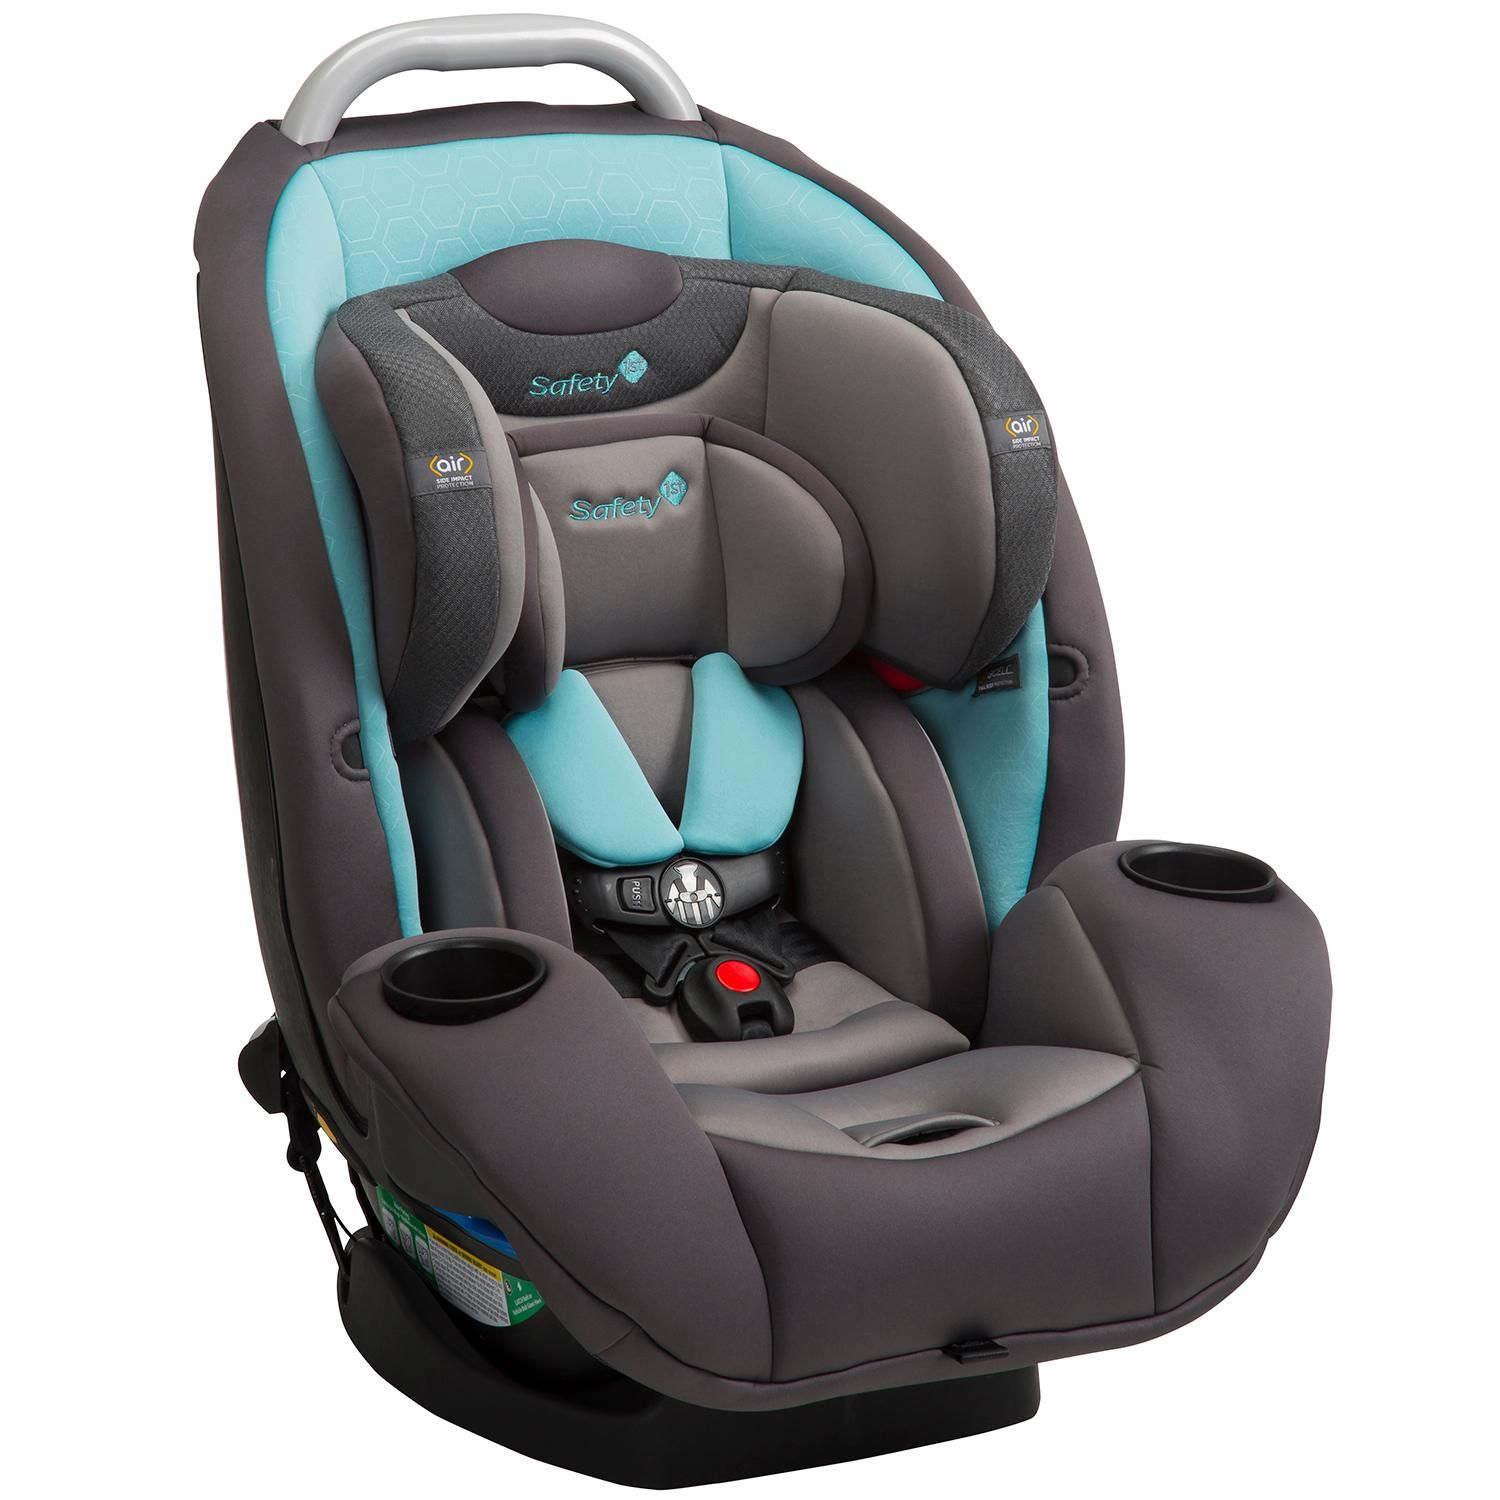 Safety 1st UltraMax Air 360 4 In 1 Convertible Car Seat